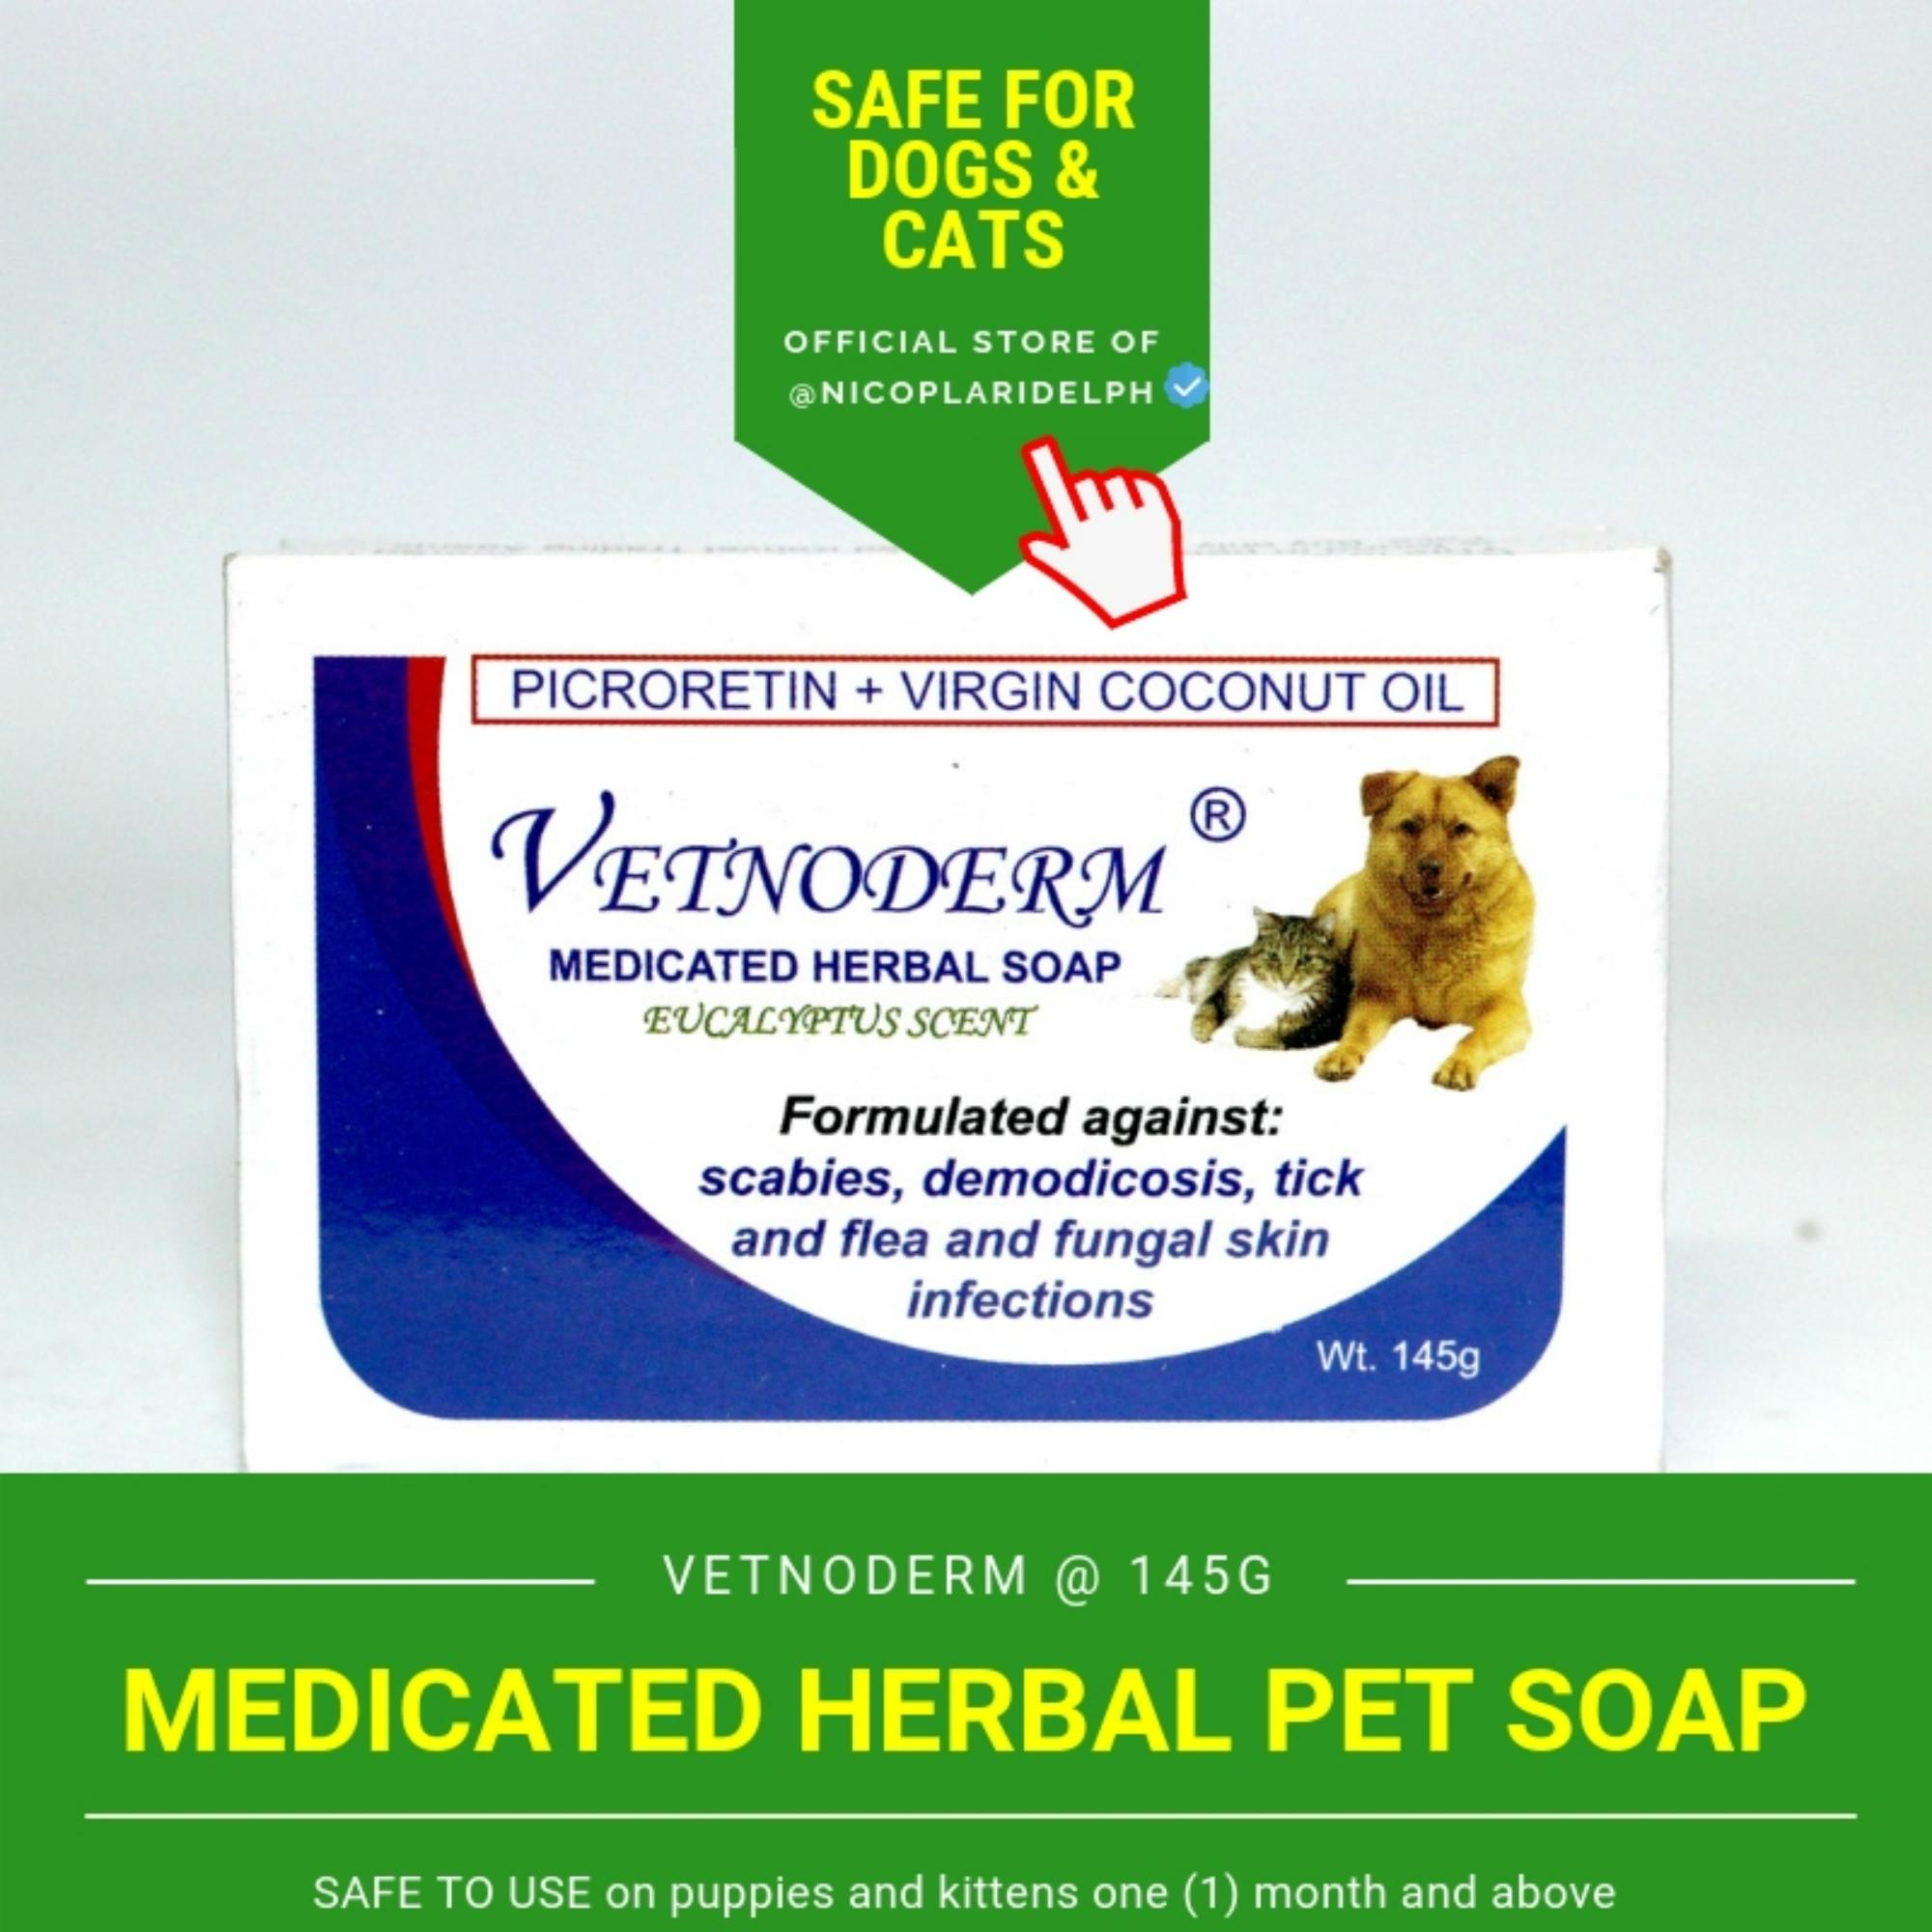 Vetnoderm Medicated Herbal Soap For Dogs And Cats (145g) By Nicoplaridelph.